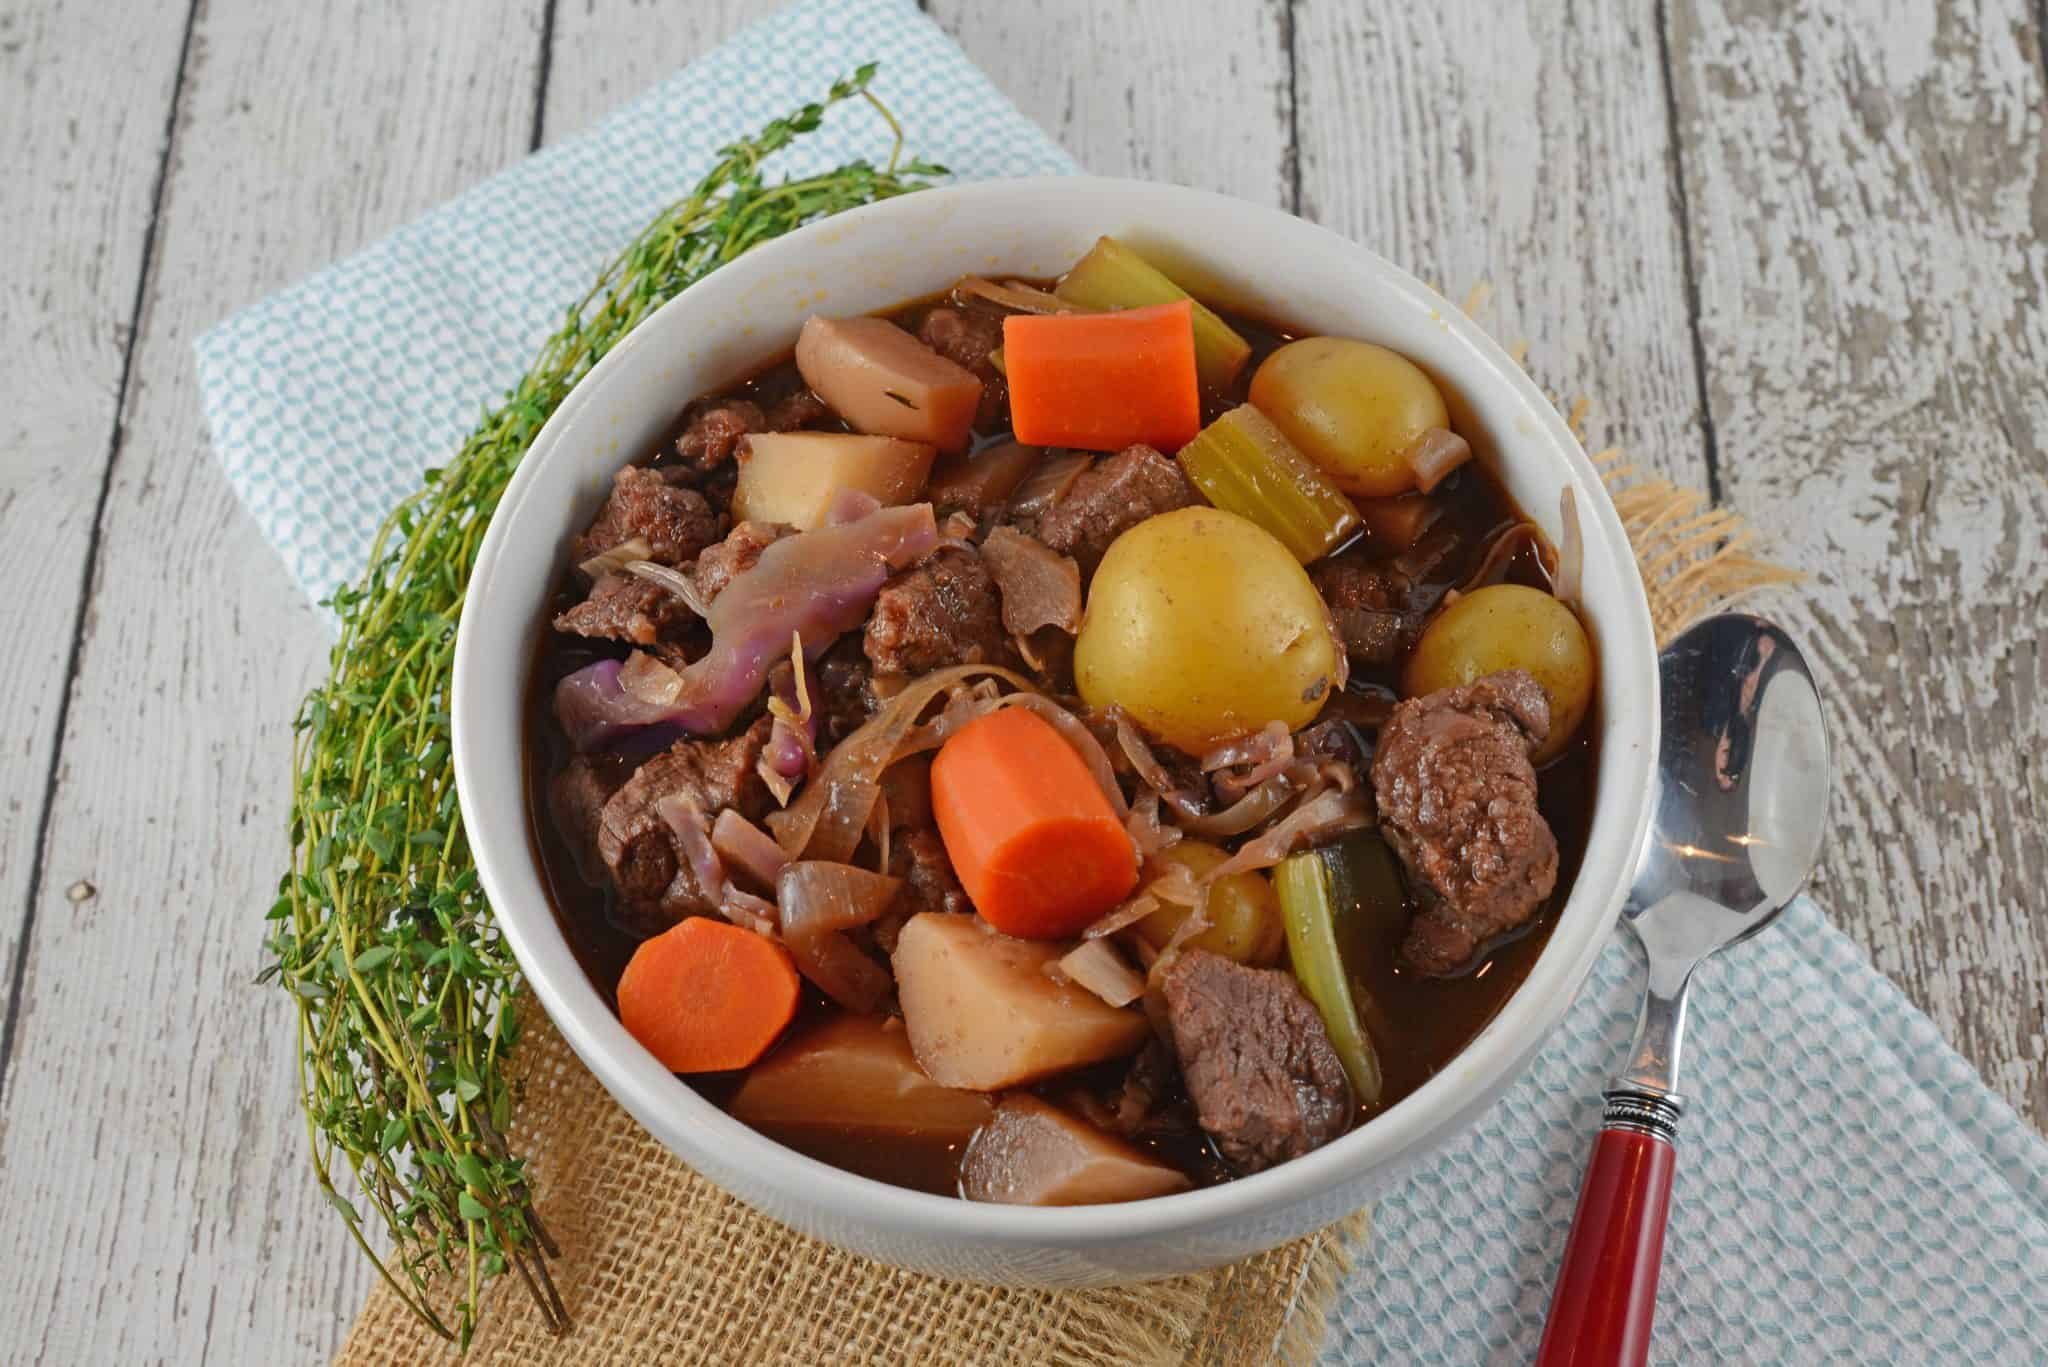 Beef Stew is one of the world's best comfort foods, but Red Wine Beef Stew filled with vegetables and a savory broth, feels like your dinner is giving you a hug!